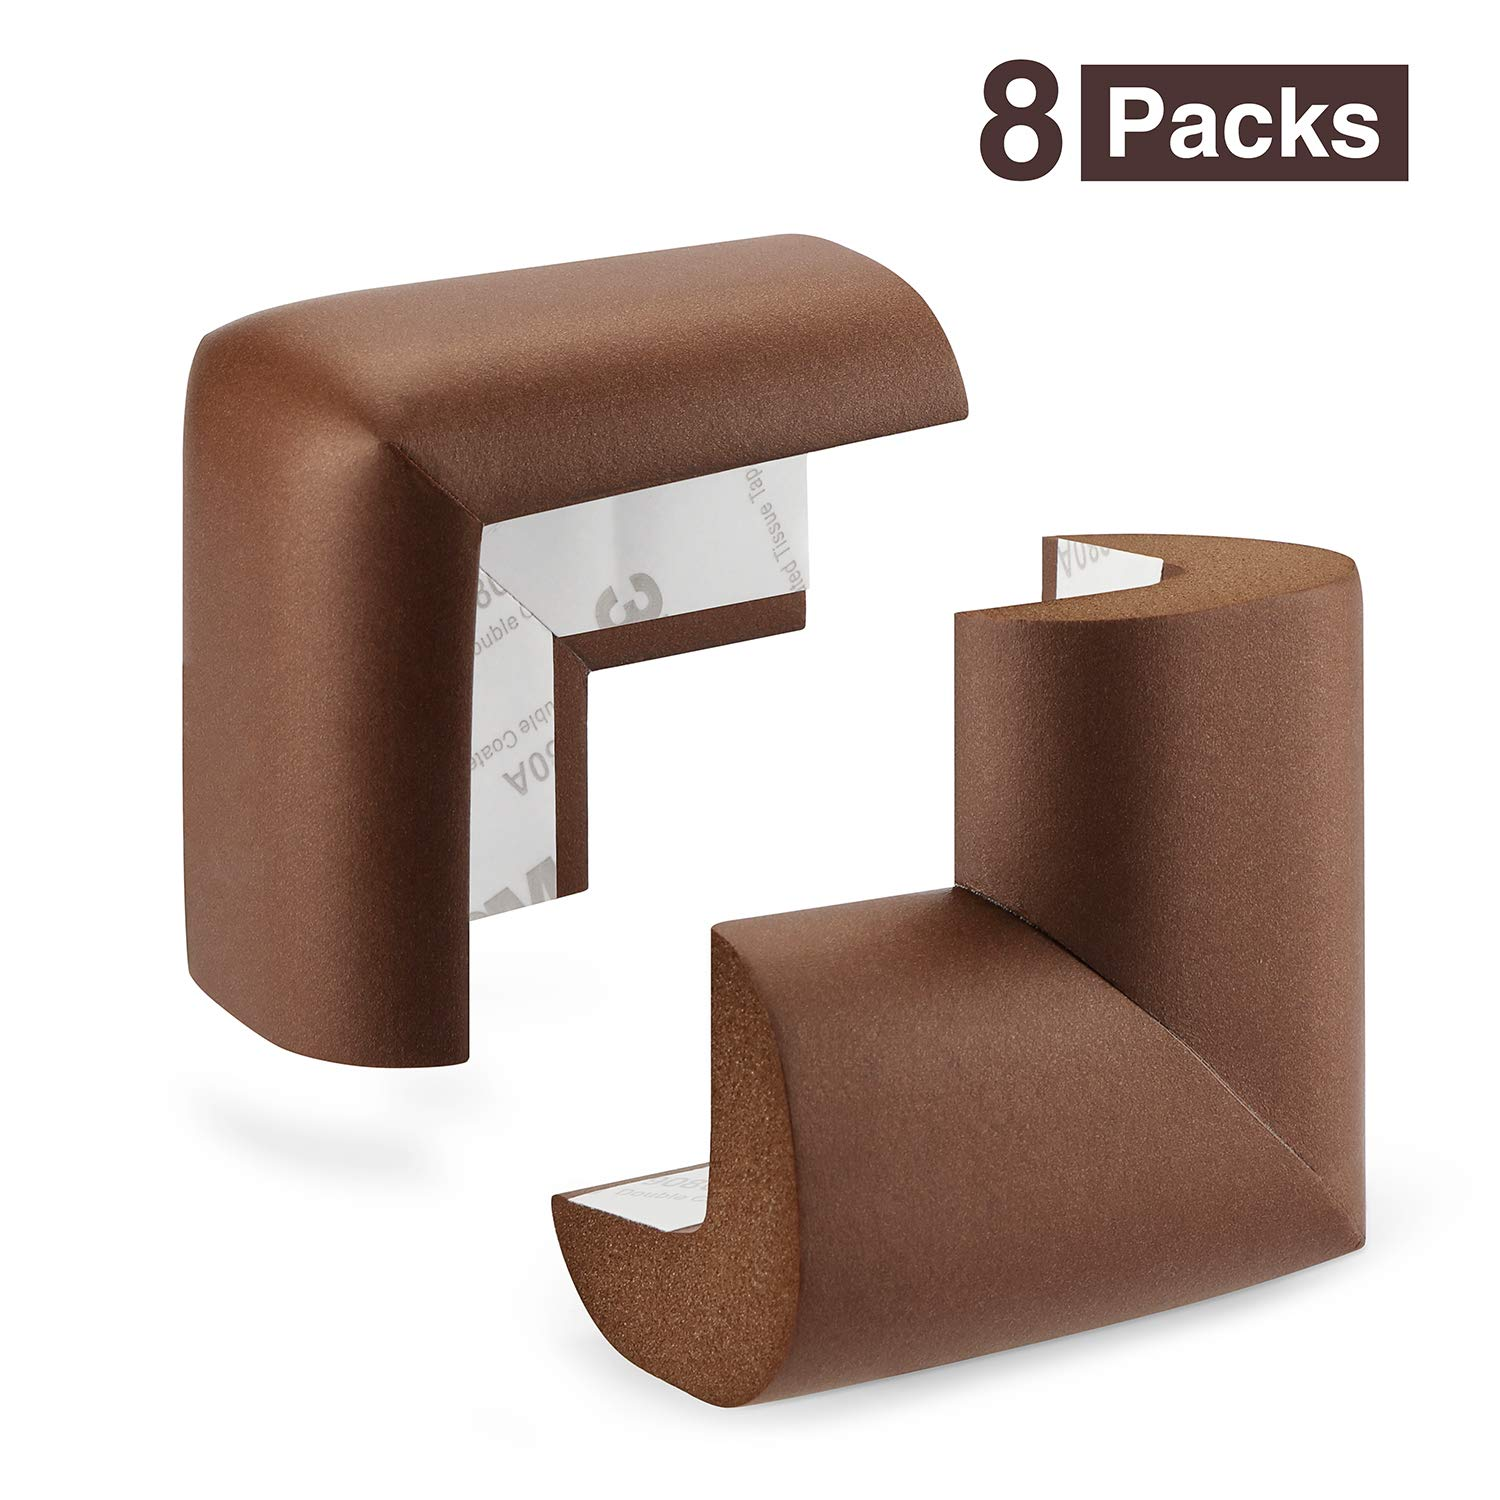 Table Corner Protectors for Baby Safety | Baby Proofing Corner Guards for Furniture | Rubber Corner Bumpers 3M Pre-Taped (8 Packs) ZhenHao Z-BCP001-BROWN